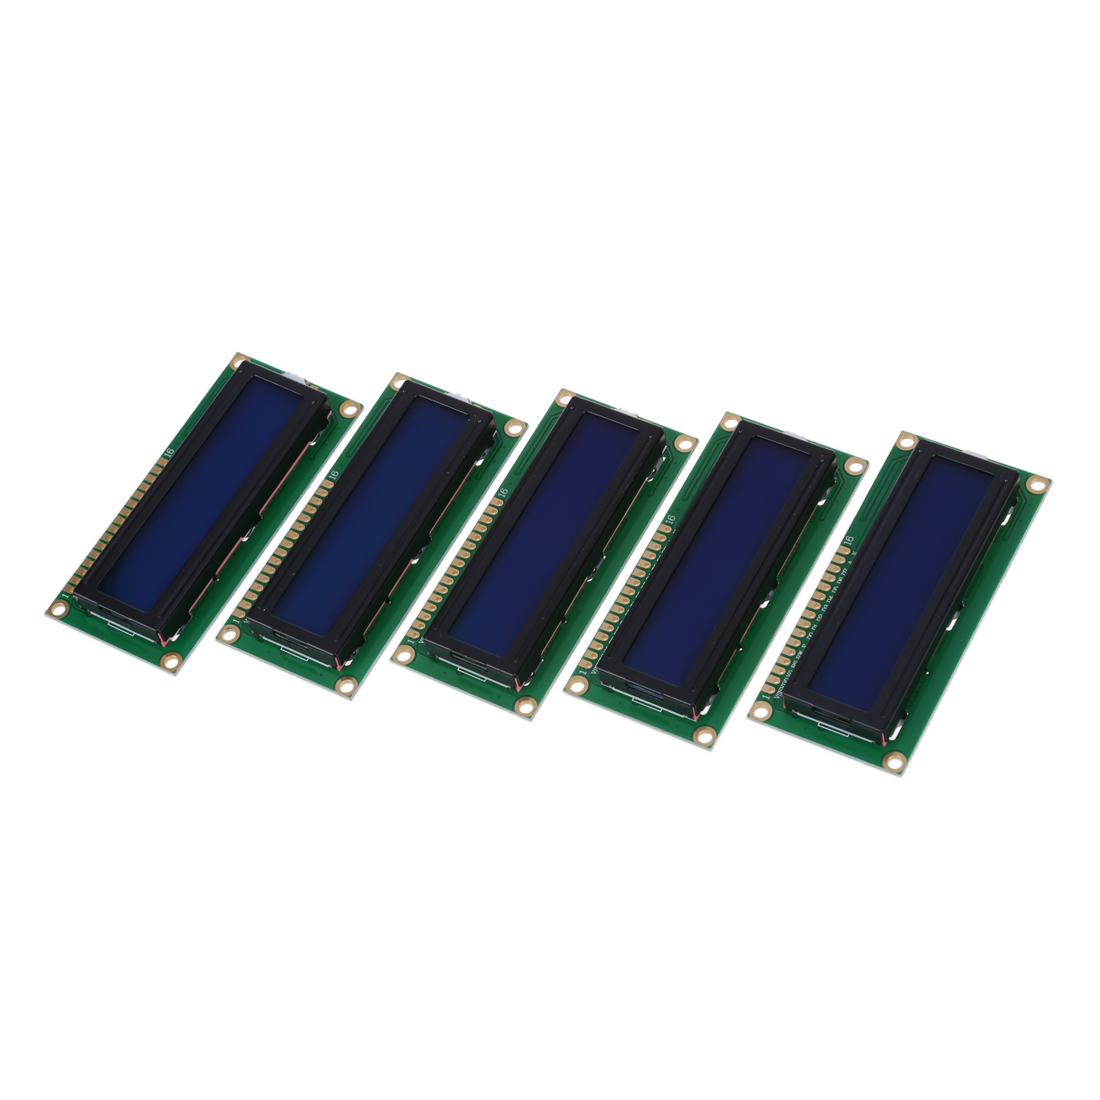 CWS-5x 1602 16x2 Character LCD LCM Display Module HD44780 Controller Blue Backlight